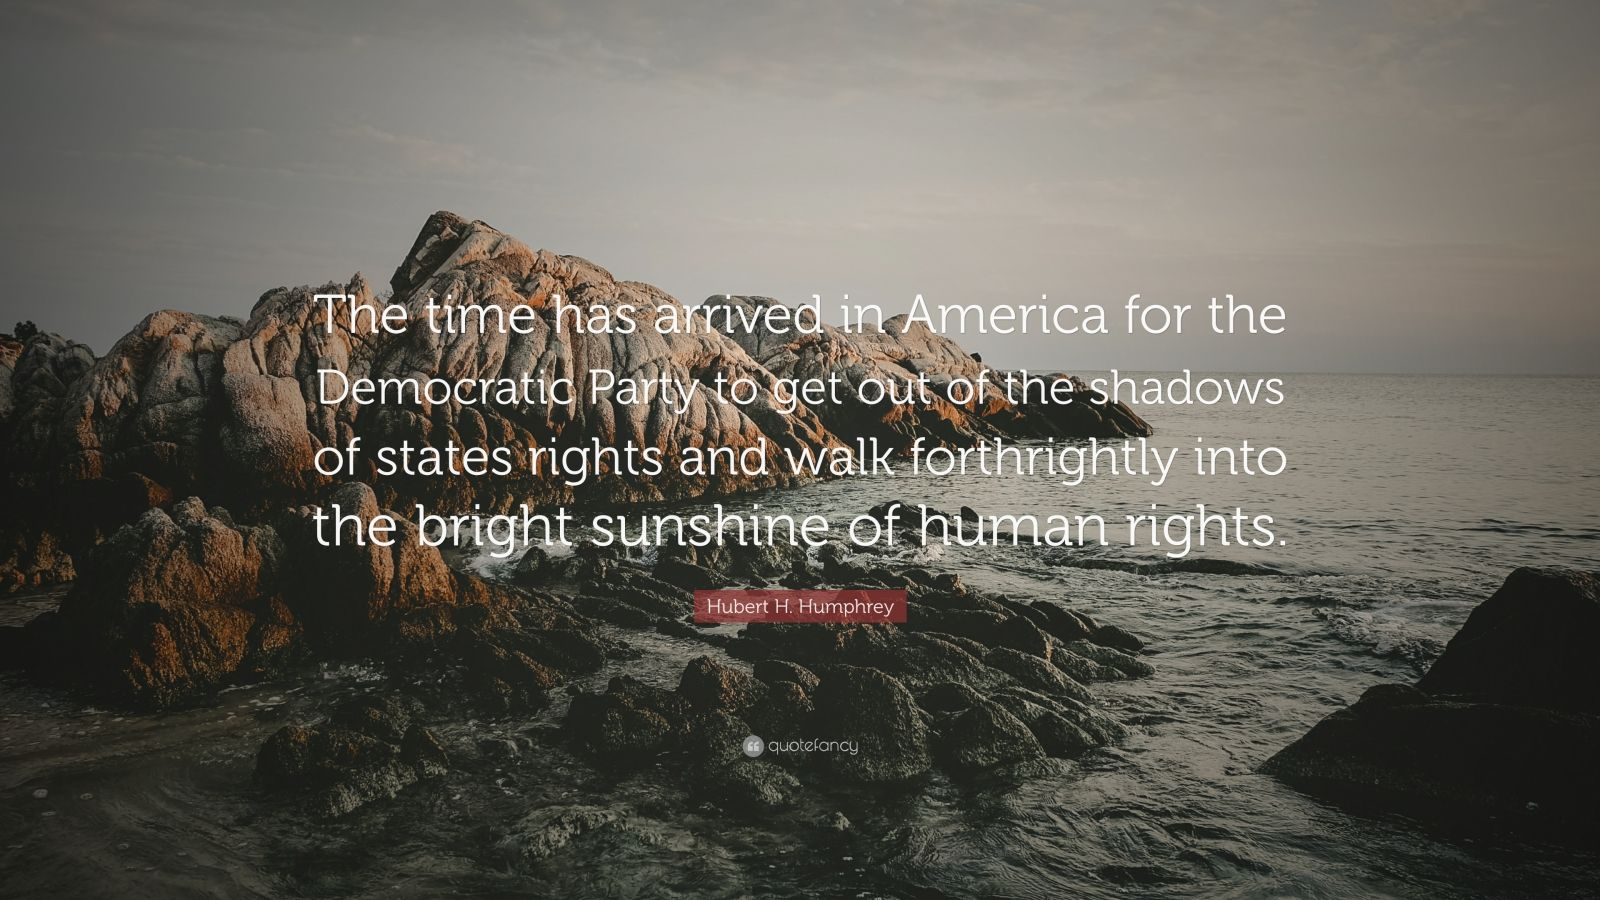 """Hubert H. Humphrey Quote: """"The time has arrived in America for the Democratic Party to get out of the shadows of states rights and walk forthrightly into the bright sunshine of human rights."""""""